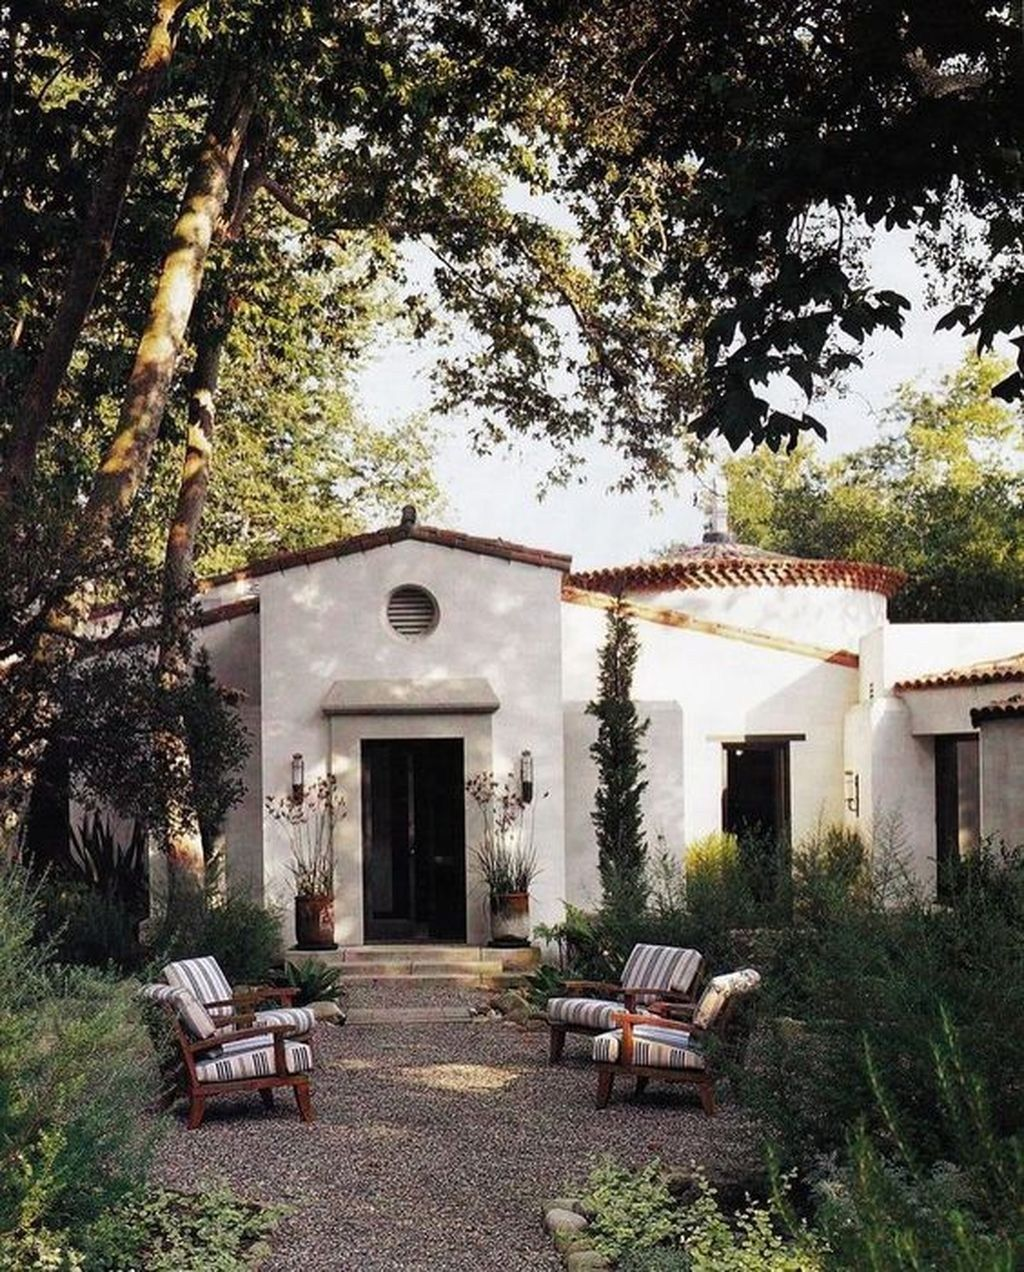 Stunning Mission Revival And Spanish Colonial Revival Architecture